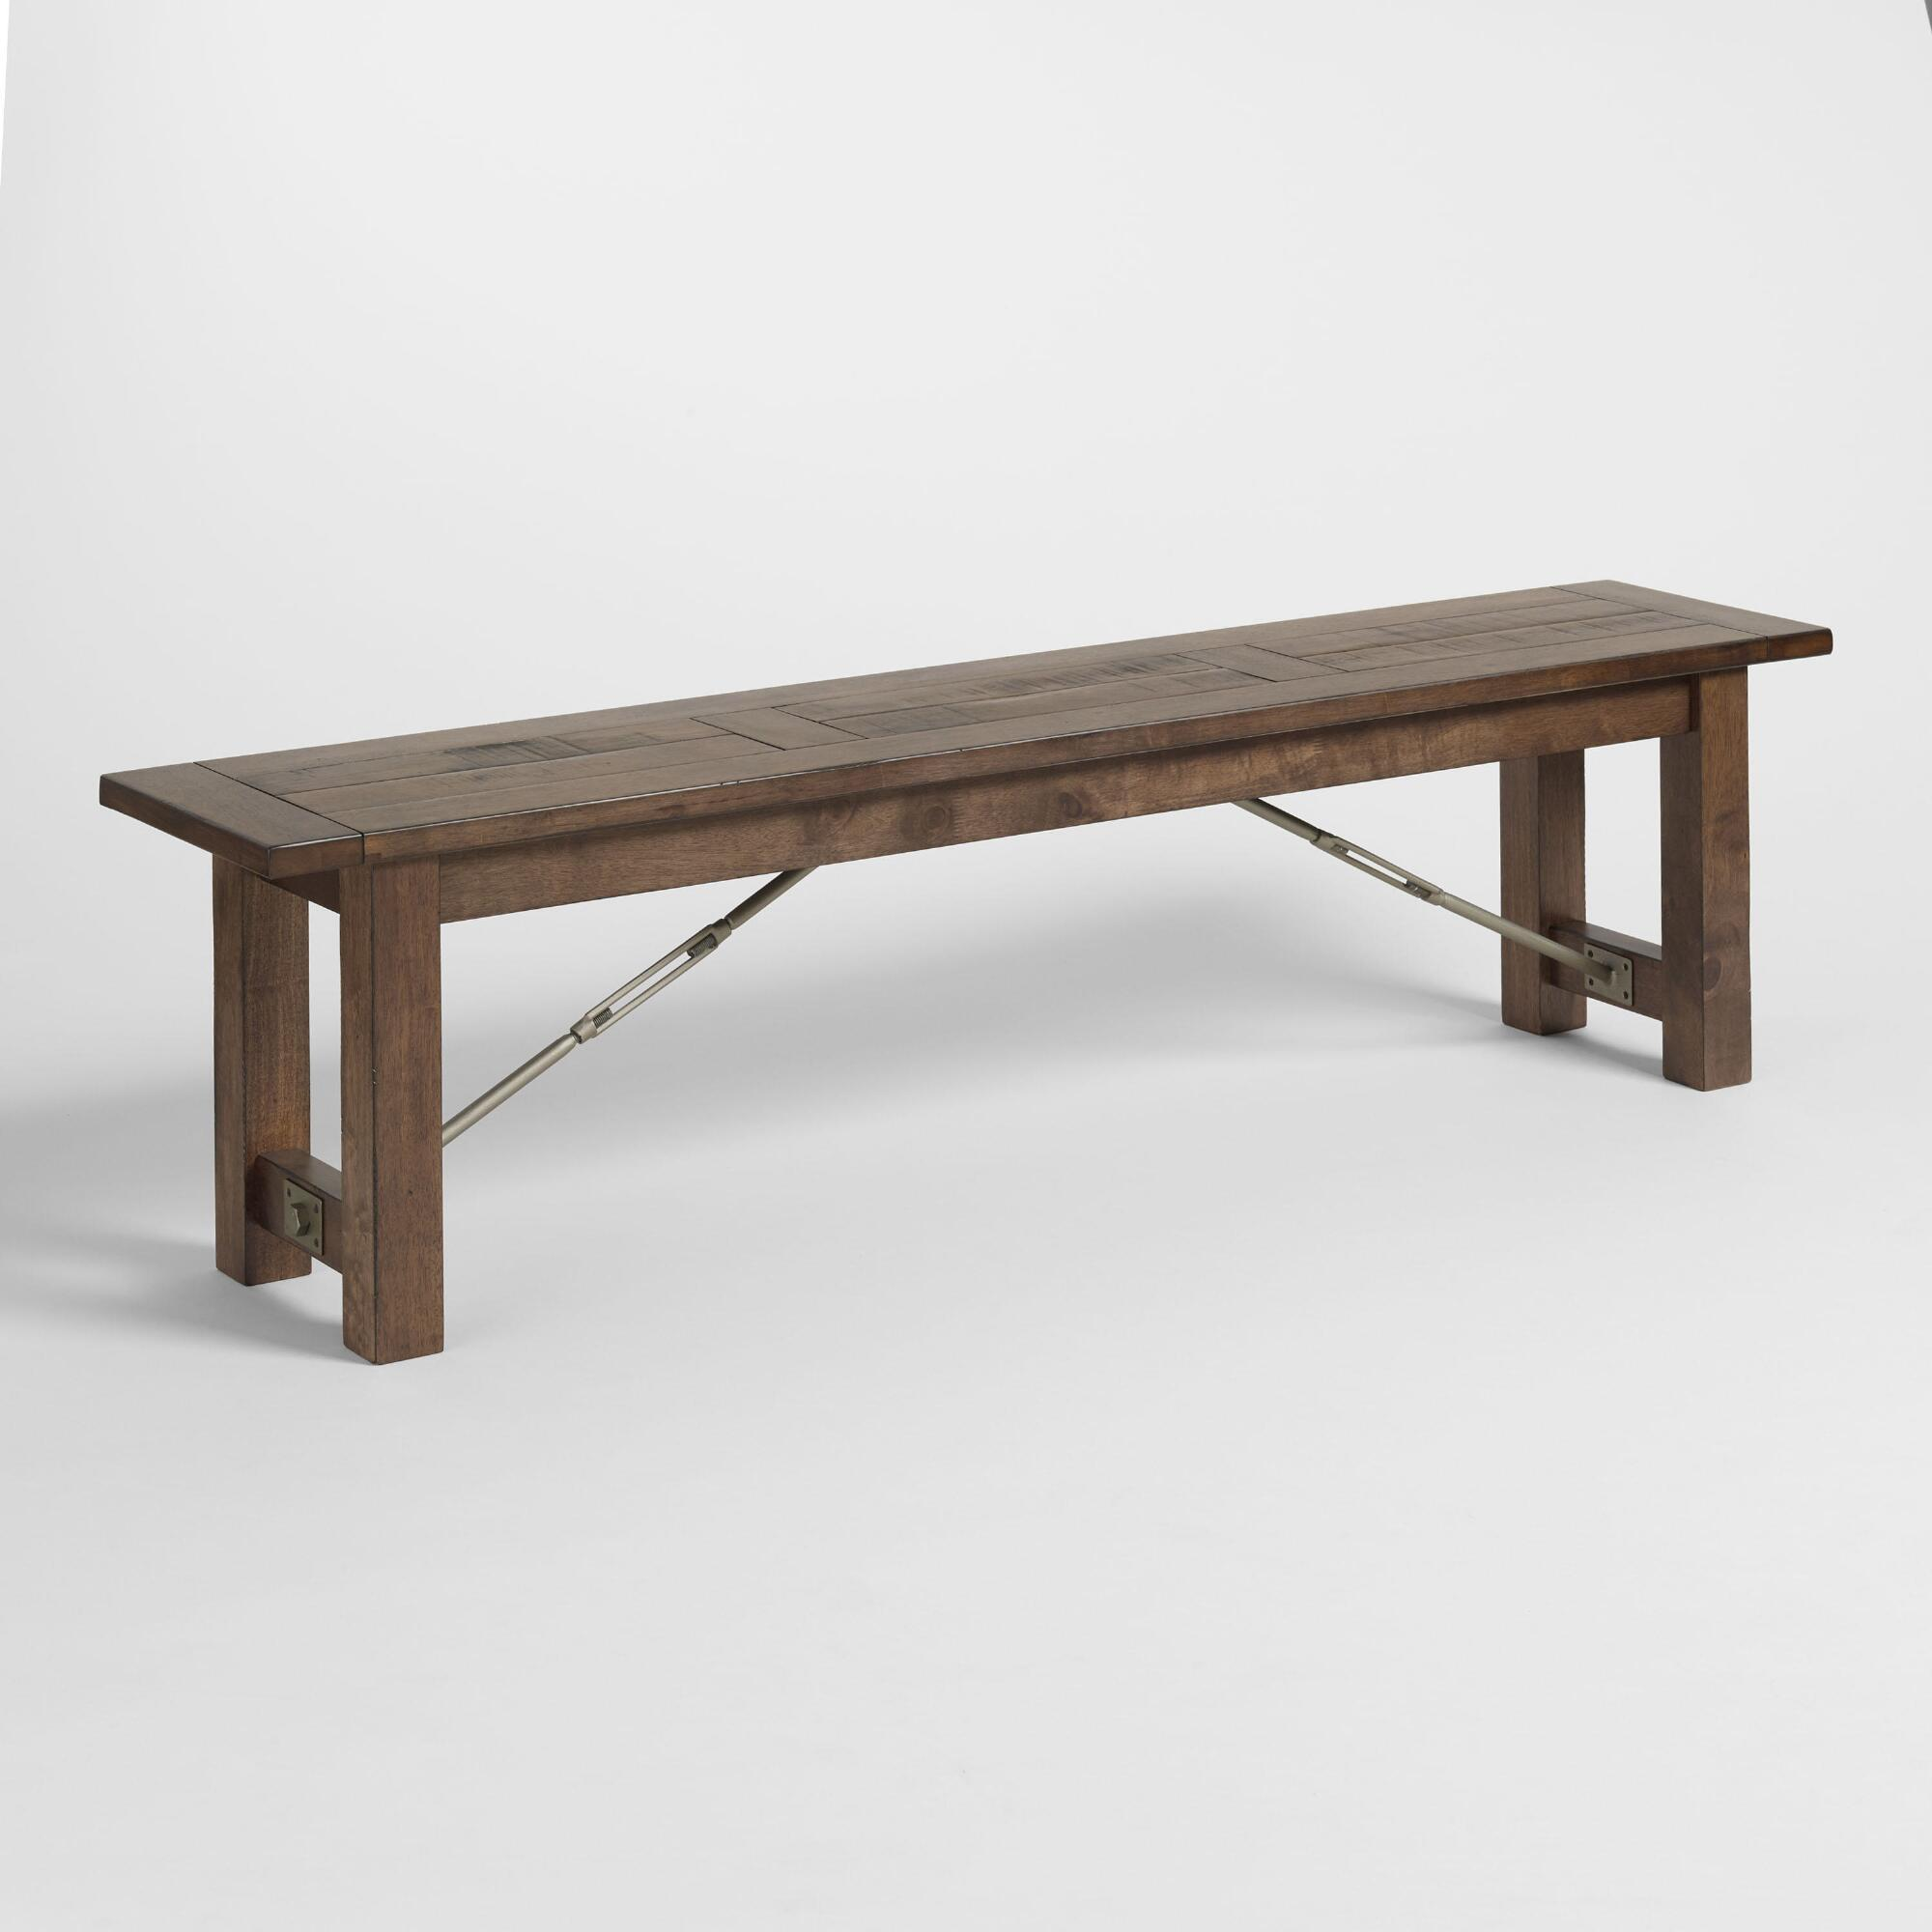 Dining Tables Benches: Wood Garner Dining Bench